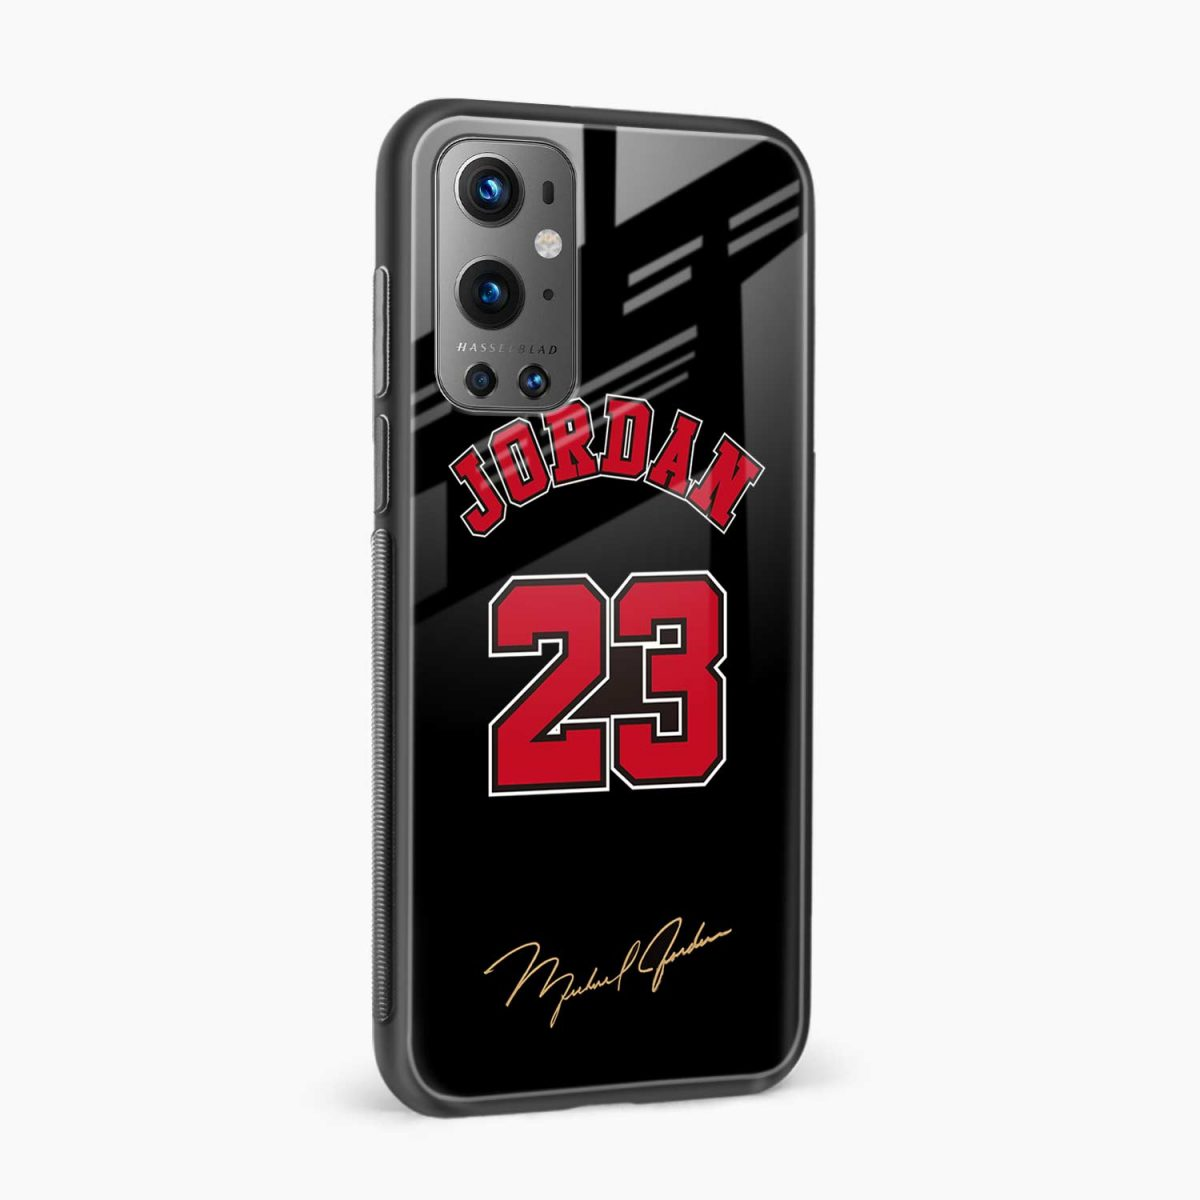 jordan 23 side view oneplus 9 pro back cover